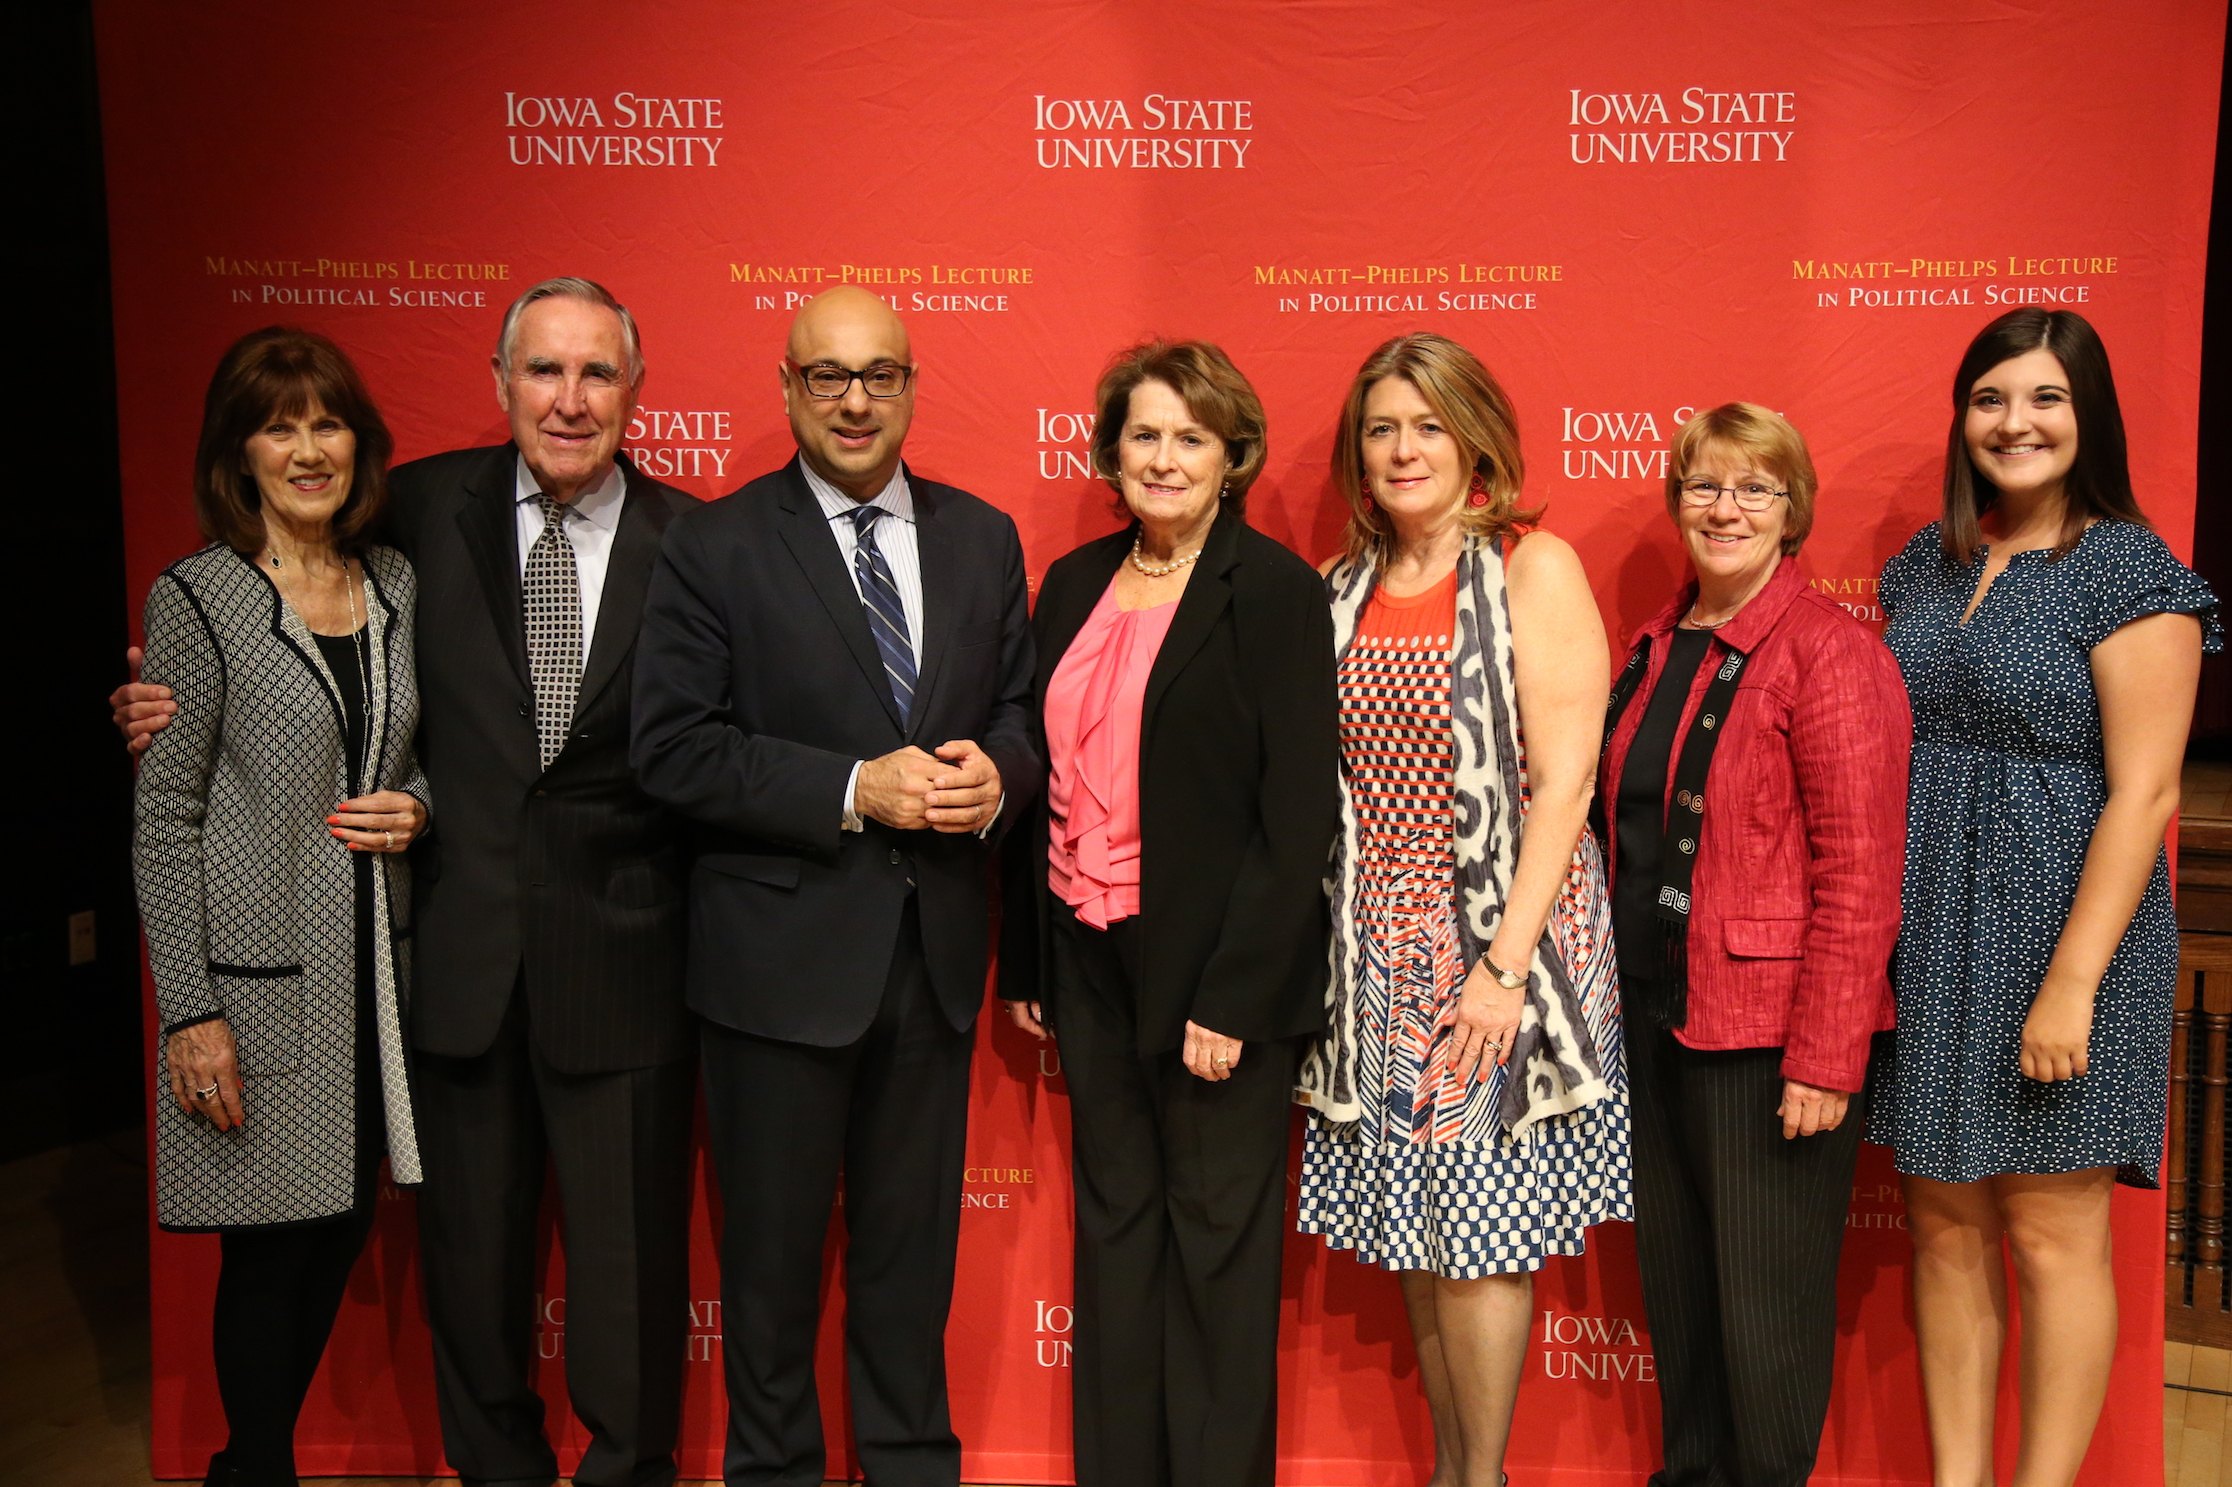 Left to right: Elizabeth Phelps, Thomas Phelps, Ali Velshi, Kathleen Manatt, Michele Manatt, Beate Schmittmann and BriAna Campbell.